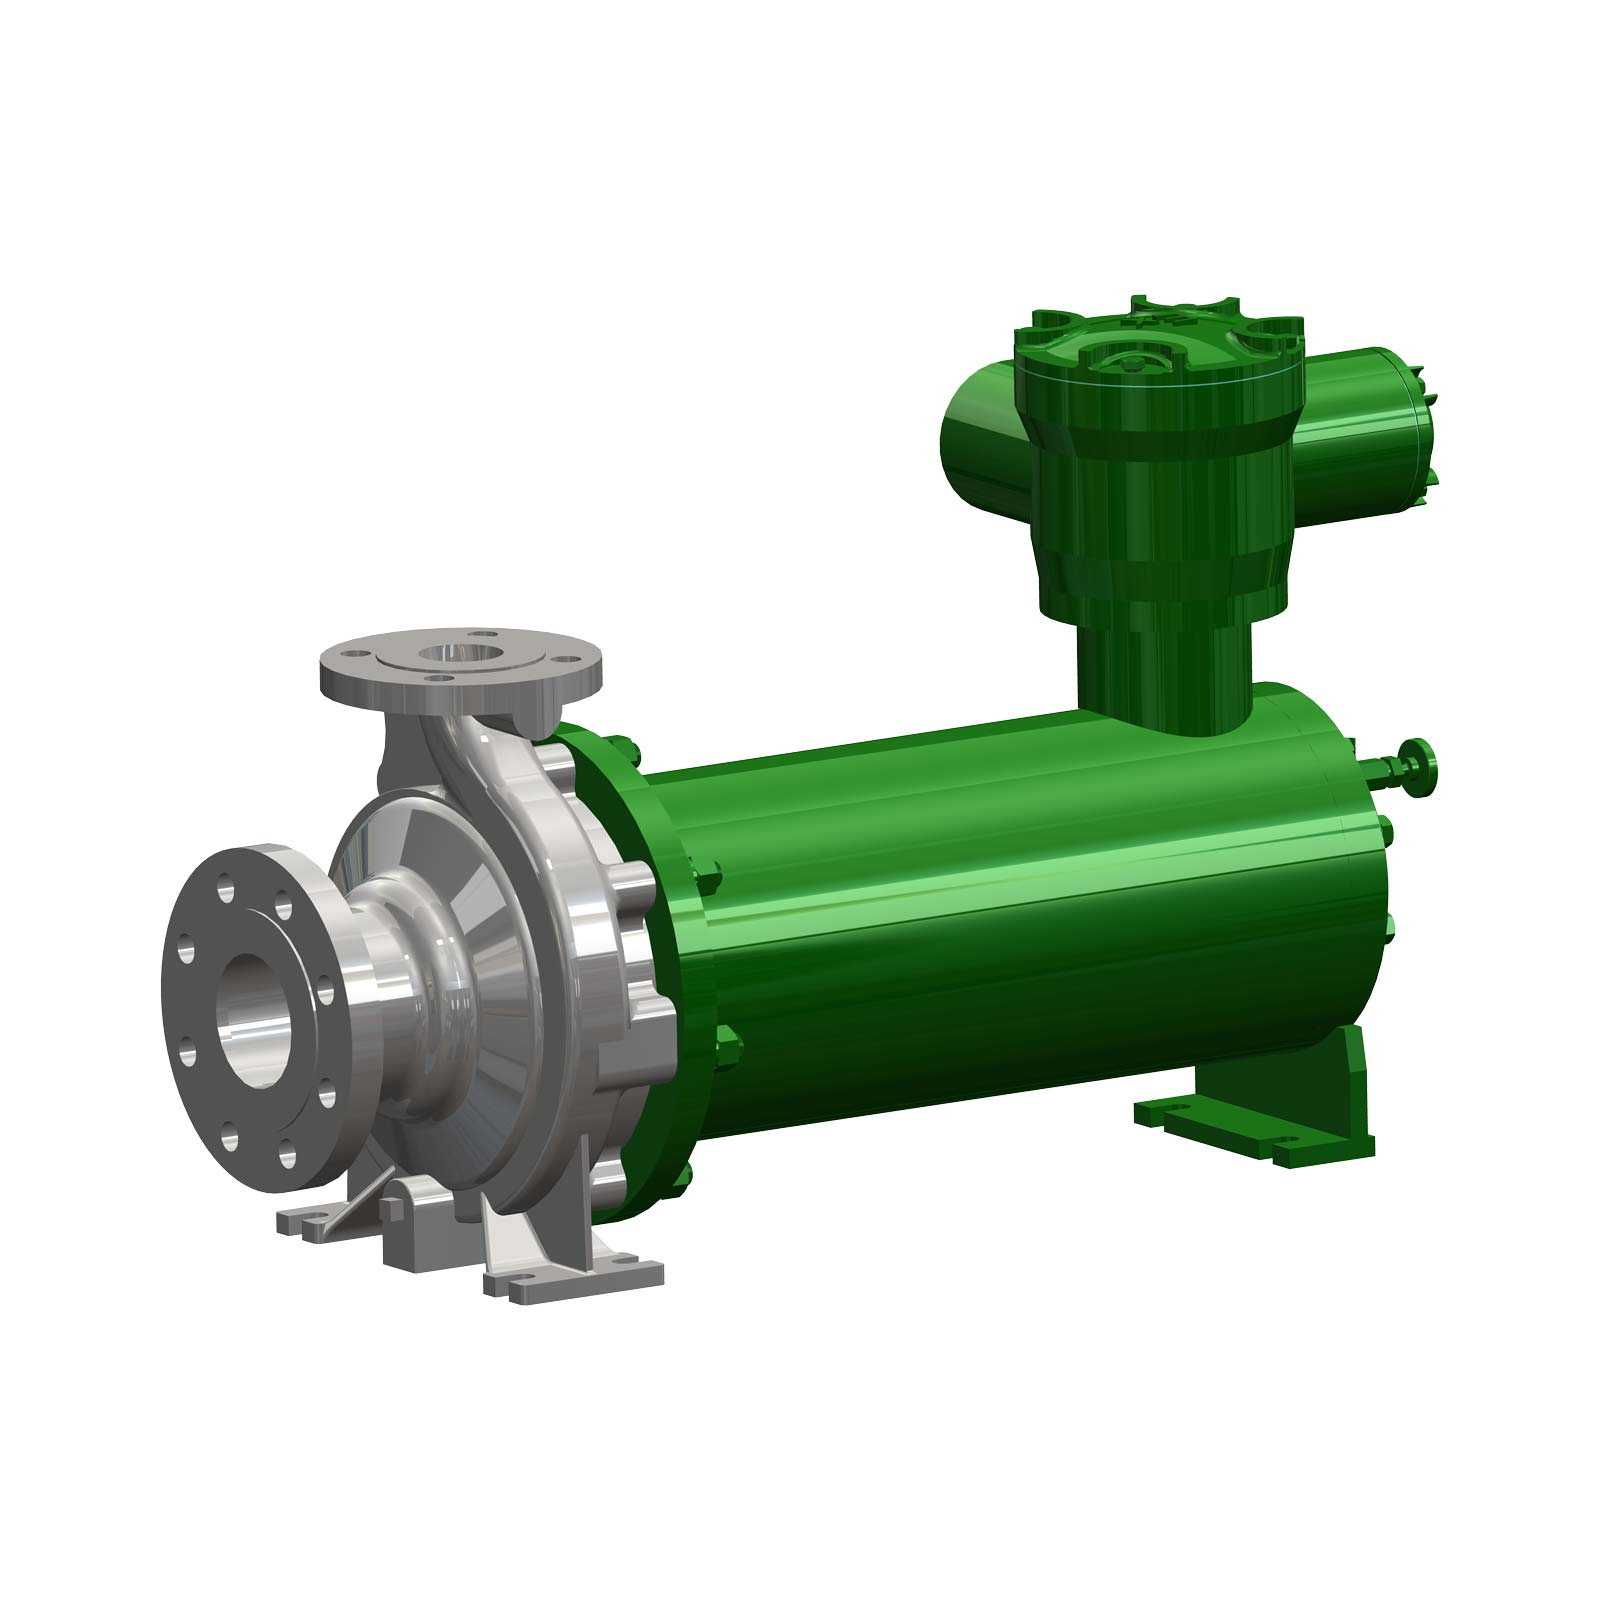 ENCAPSULATED MOTOR CENTRIFUGAL PUMPS